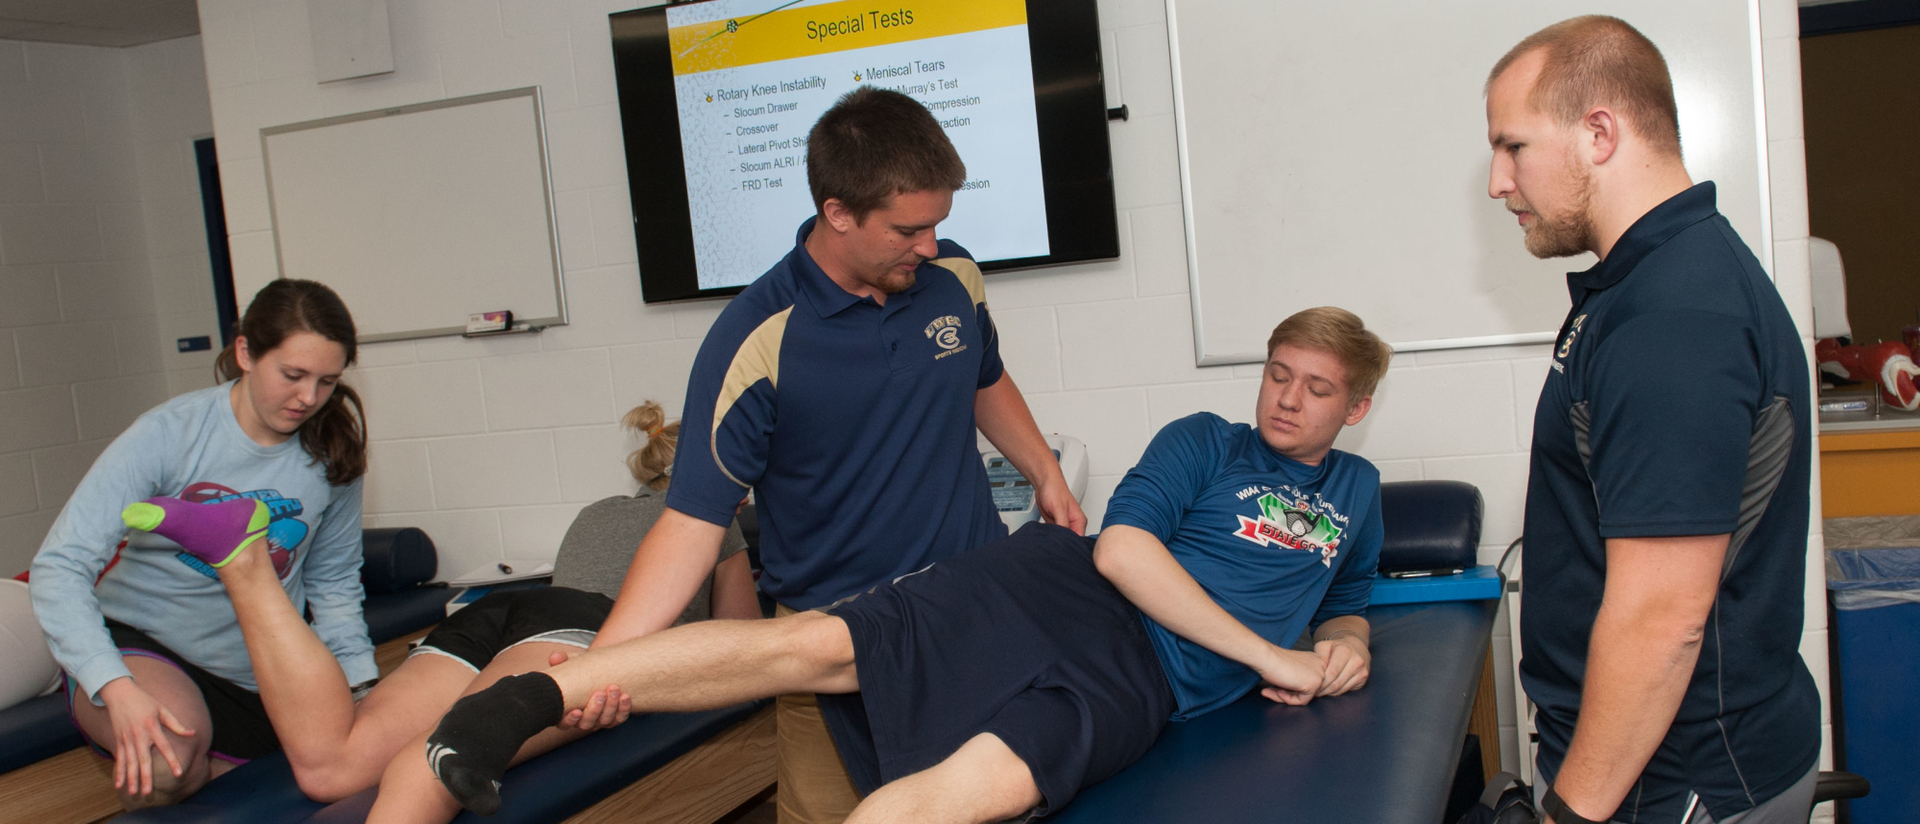 KINS students preparing to become athletic trainers